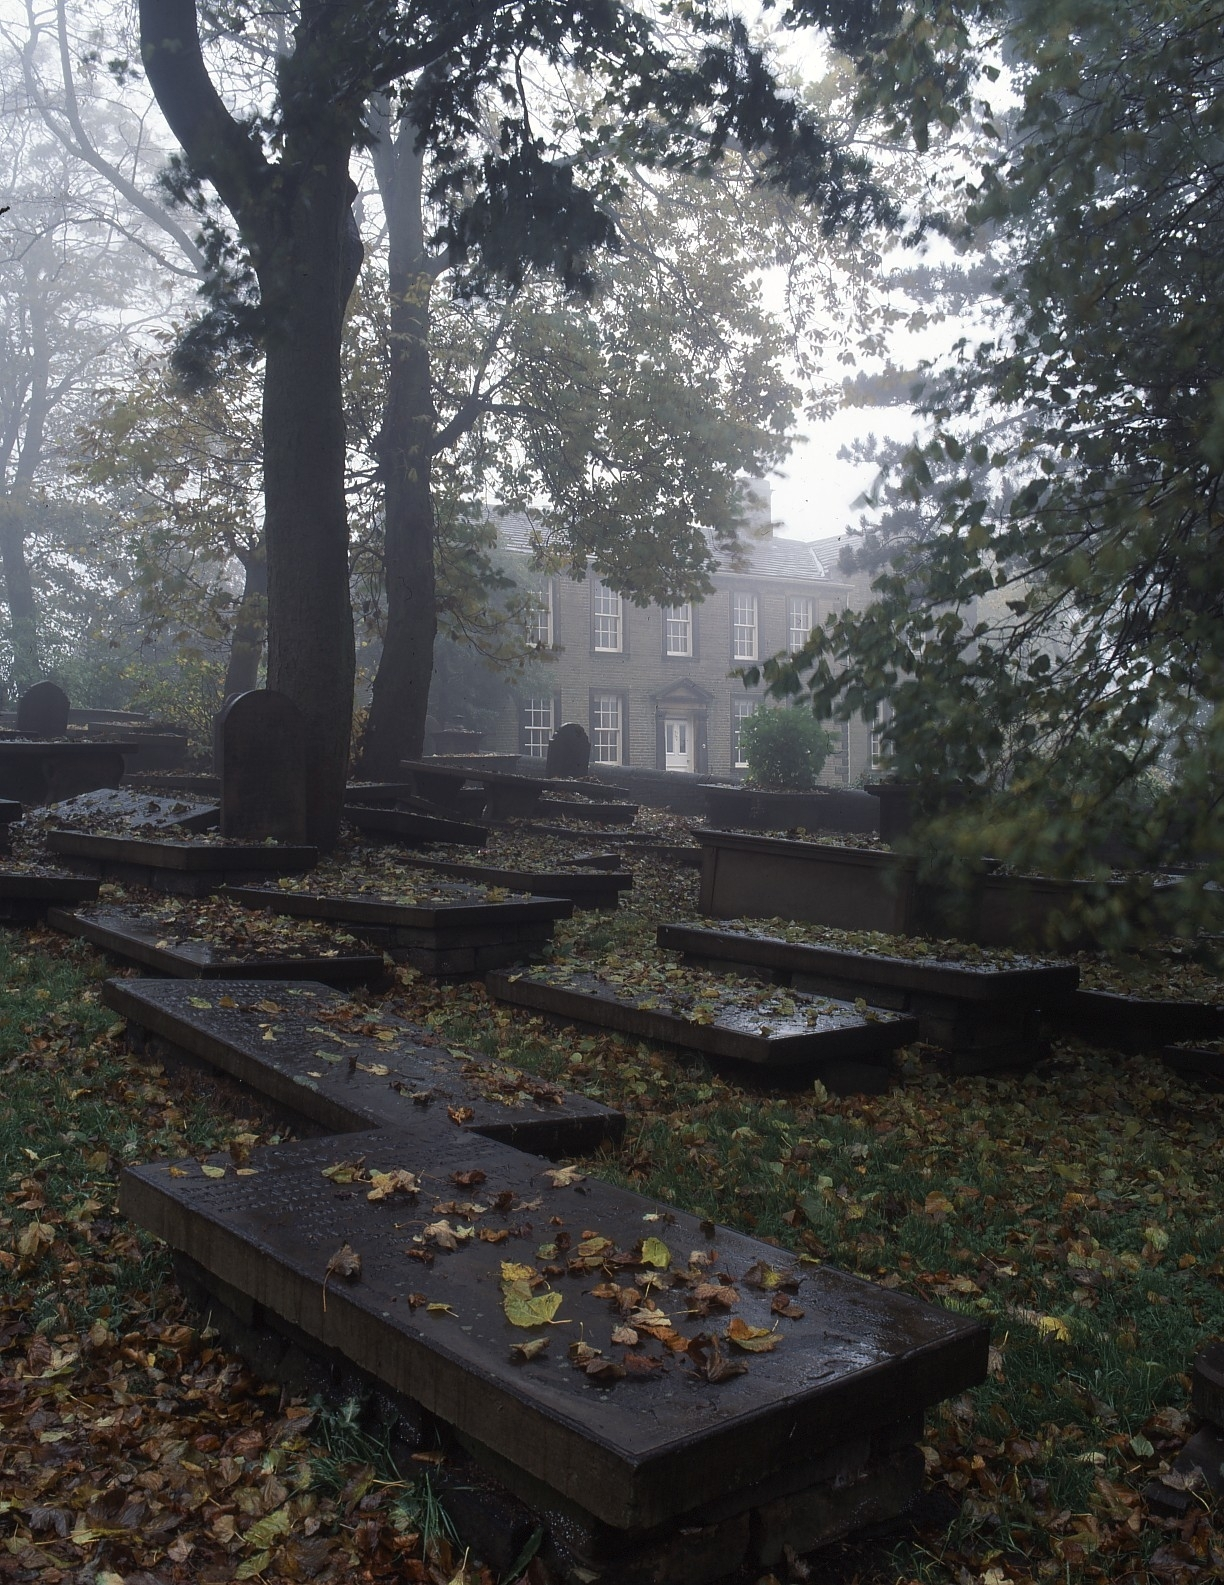 Autumn comes to the Bronte Parsonage Museum in Haworth